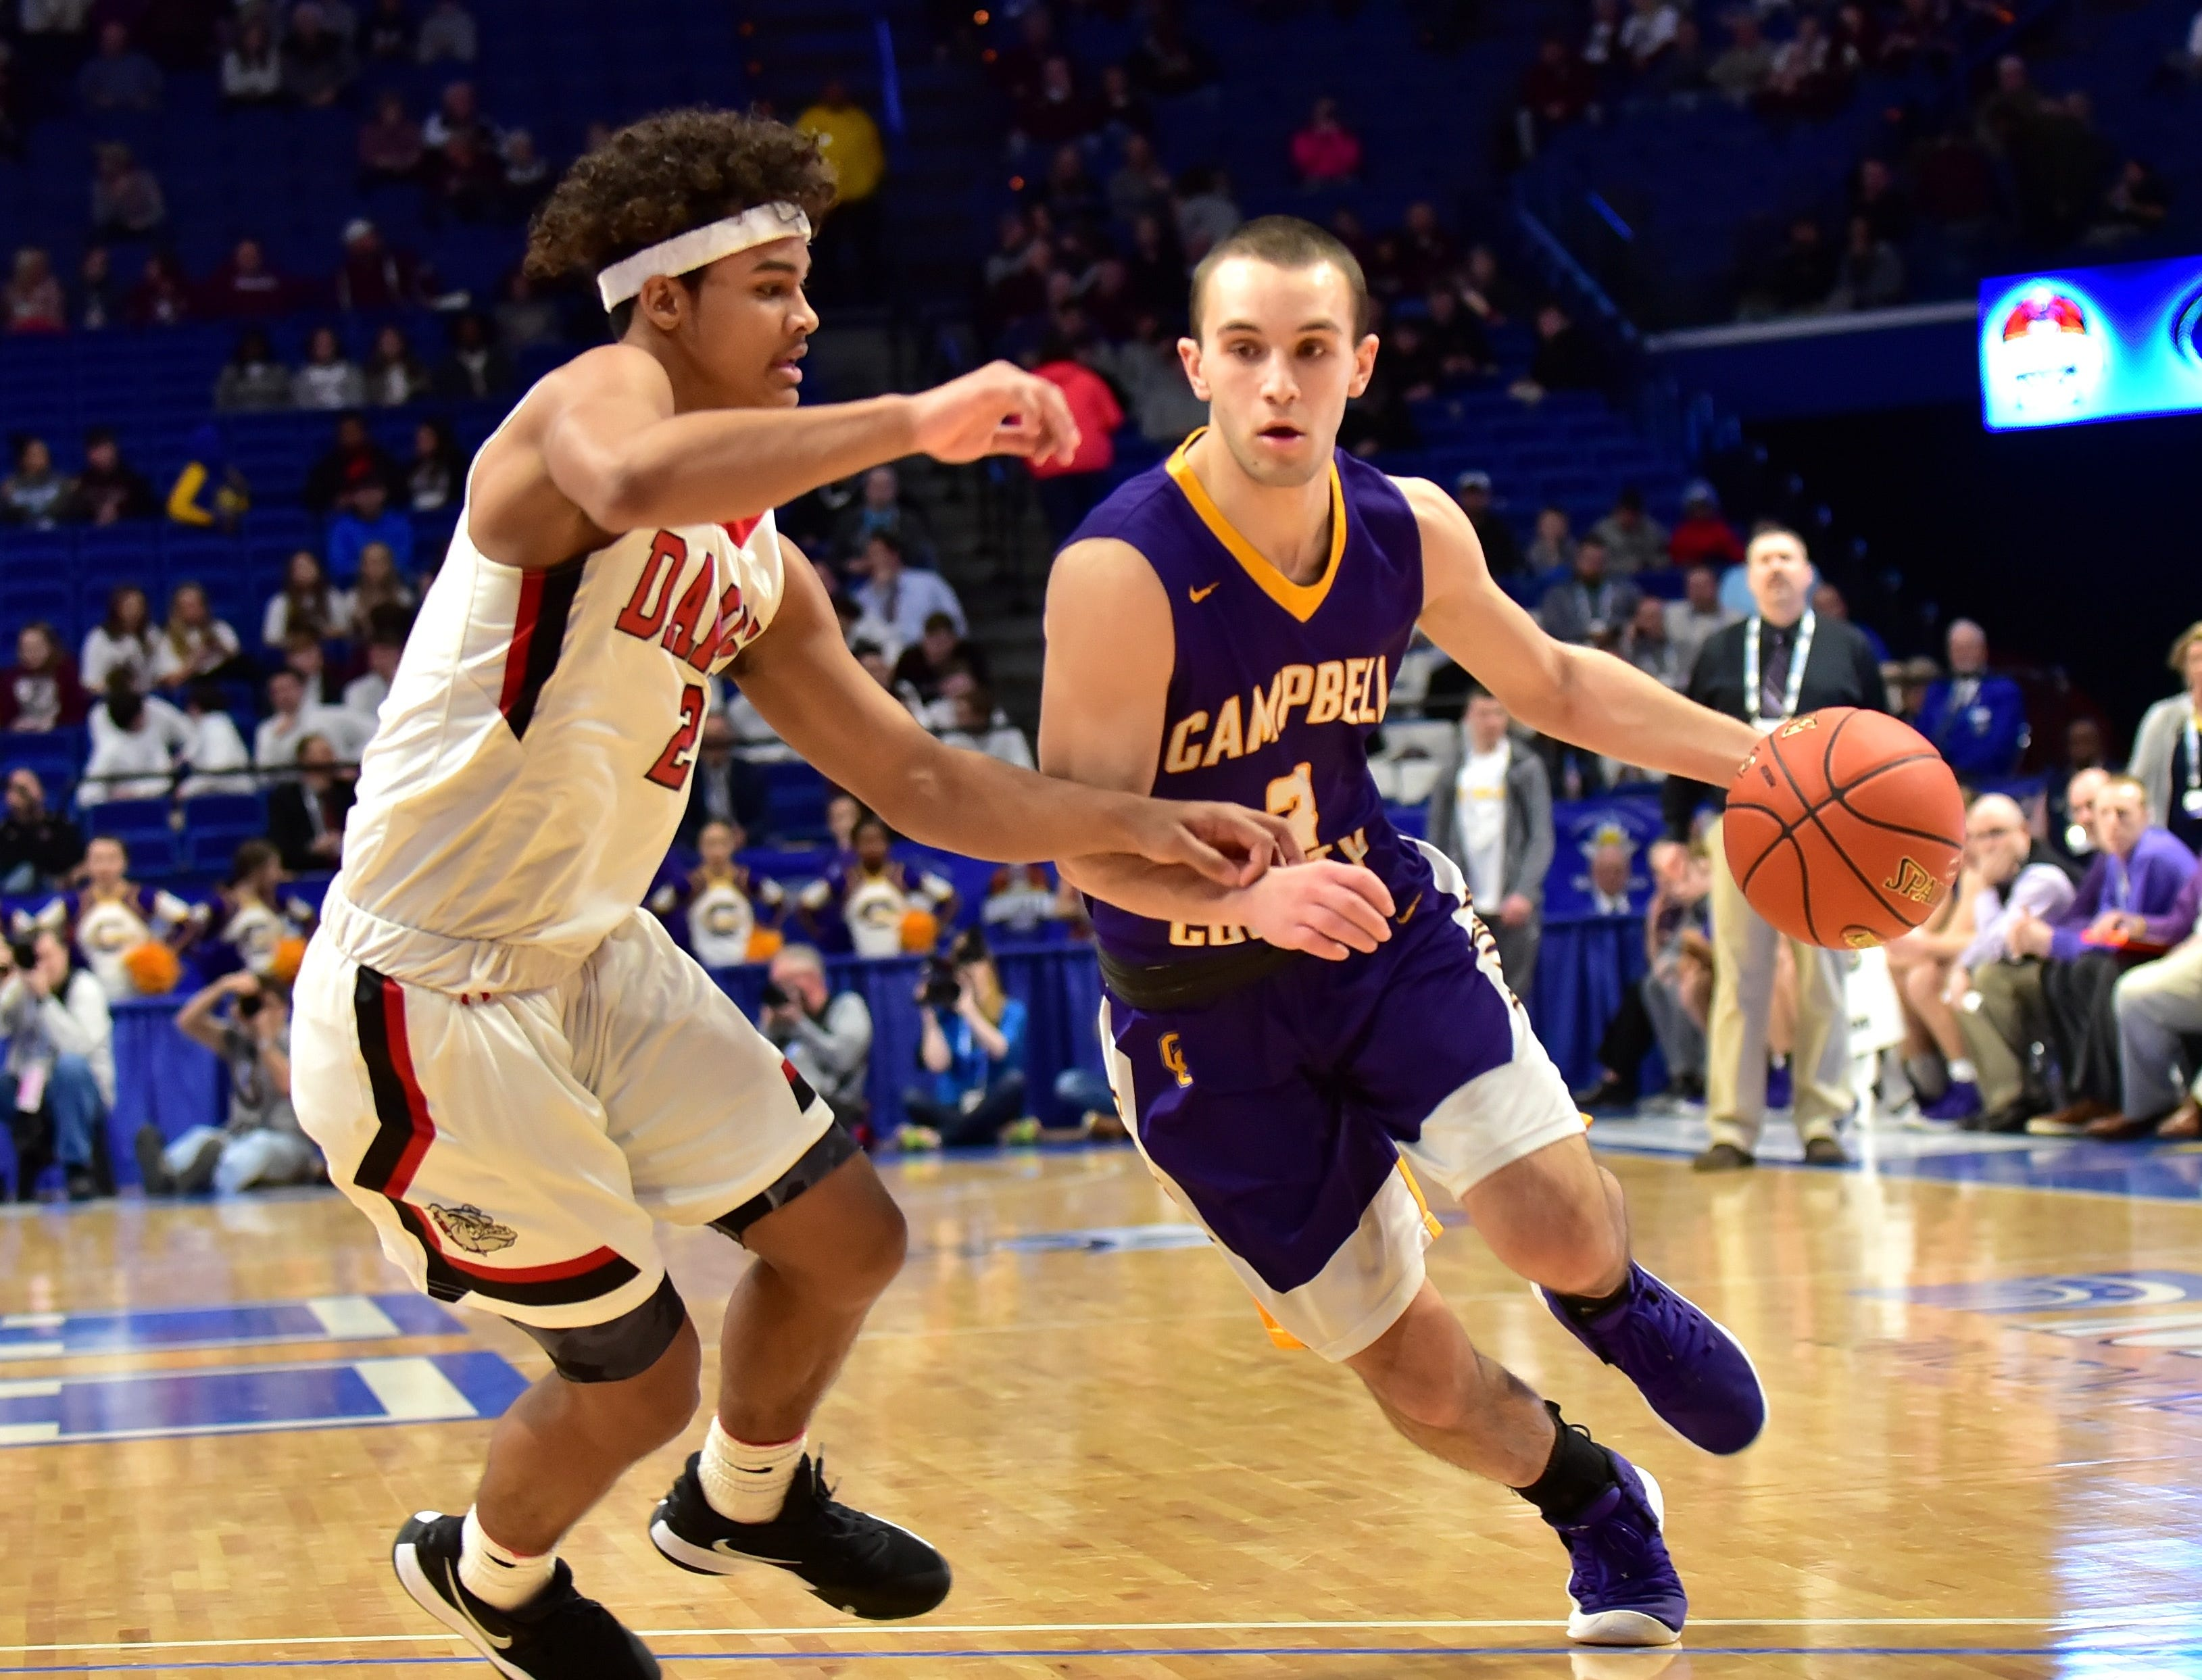 Noah Wirth (3) of Campbell County pushes past a John Hardin defender at the KHSAA Sweet 16 Tournament at Rupp Arena in Lexington, KY, March 6, 2019